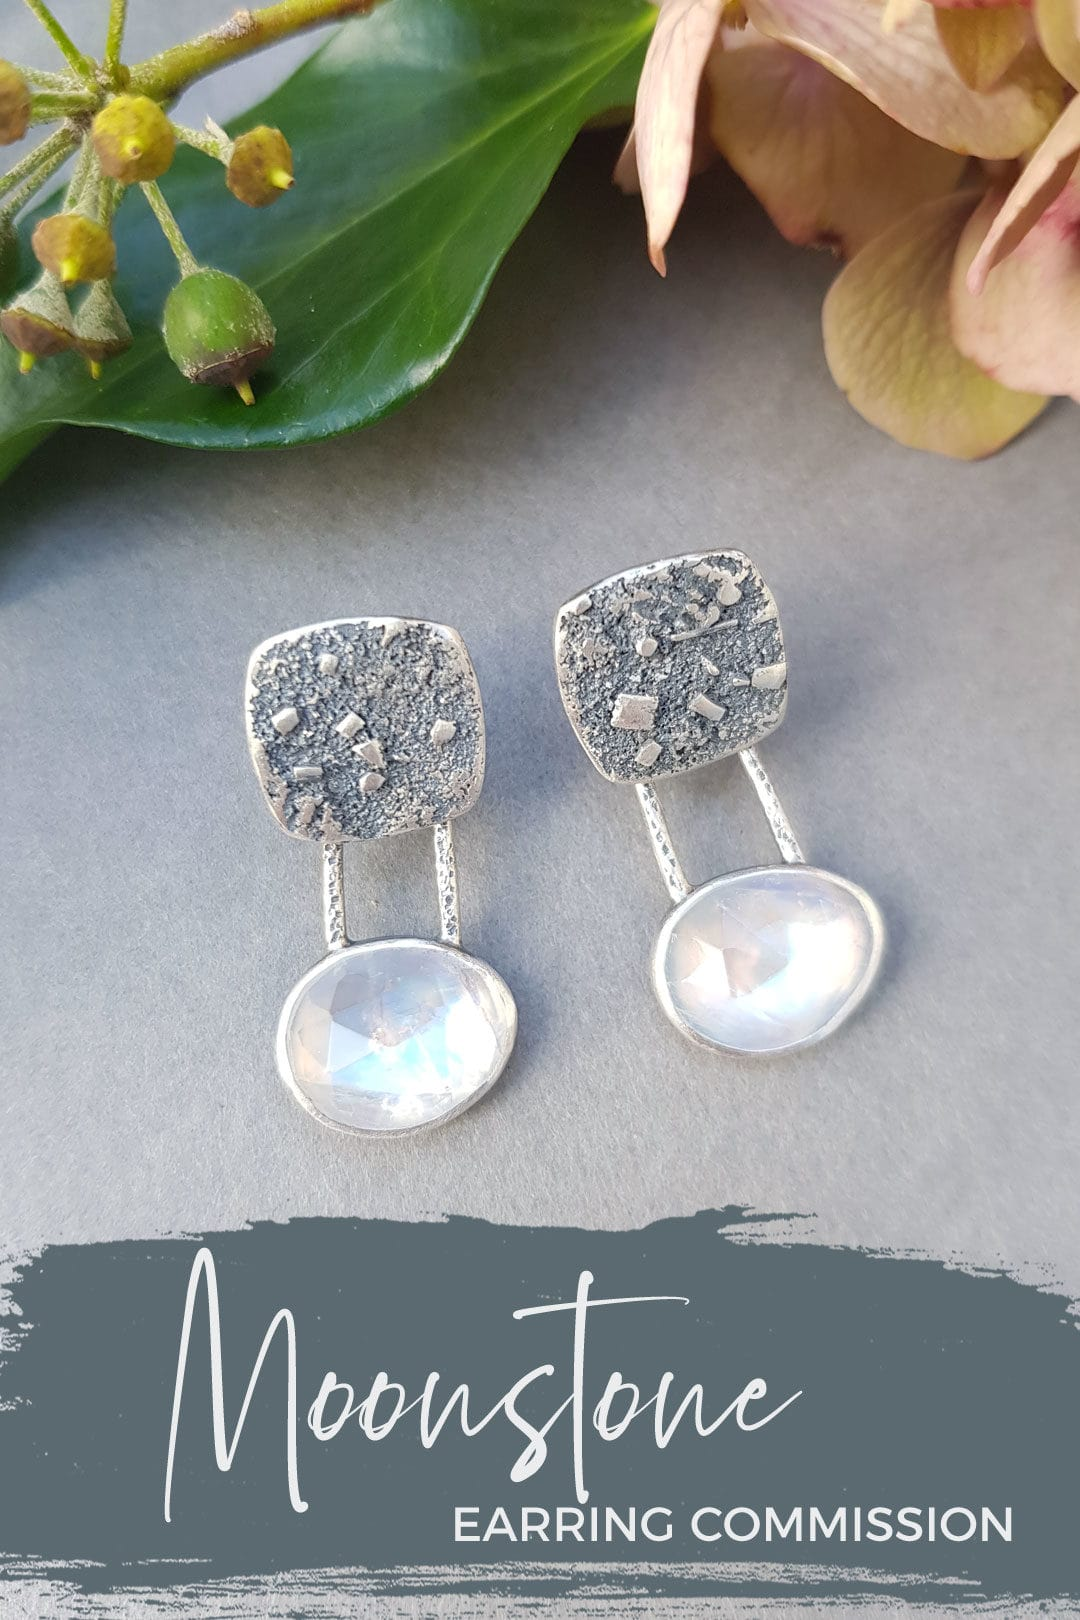 Rainbow Moonstone stud earring commission